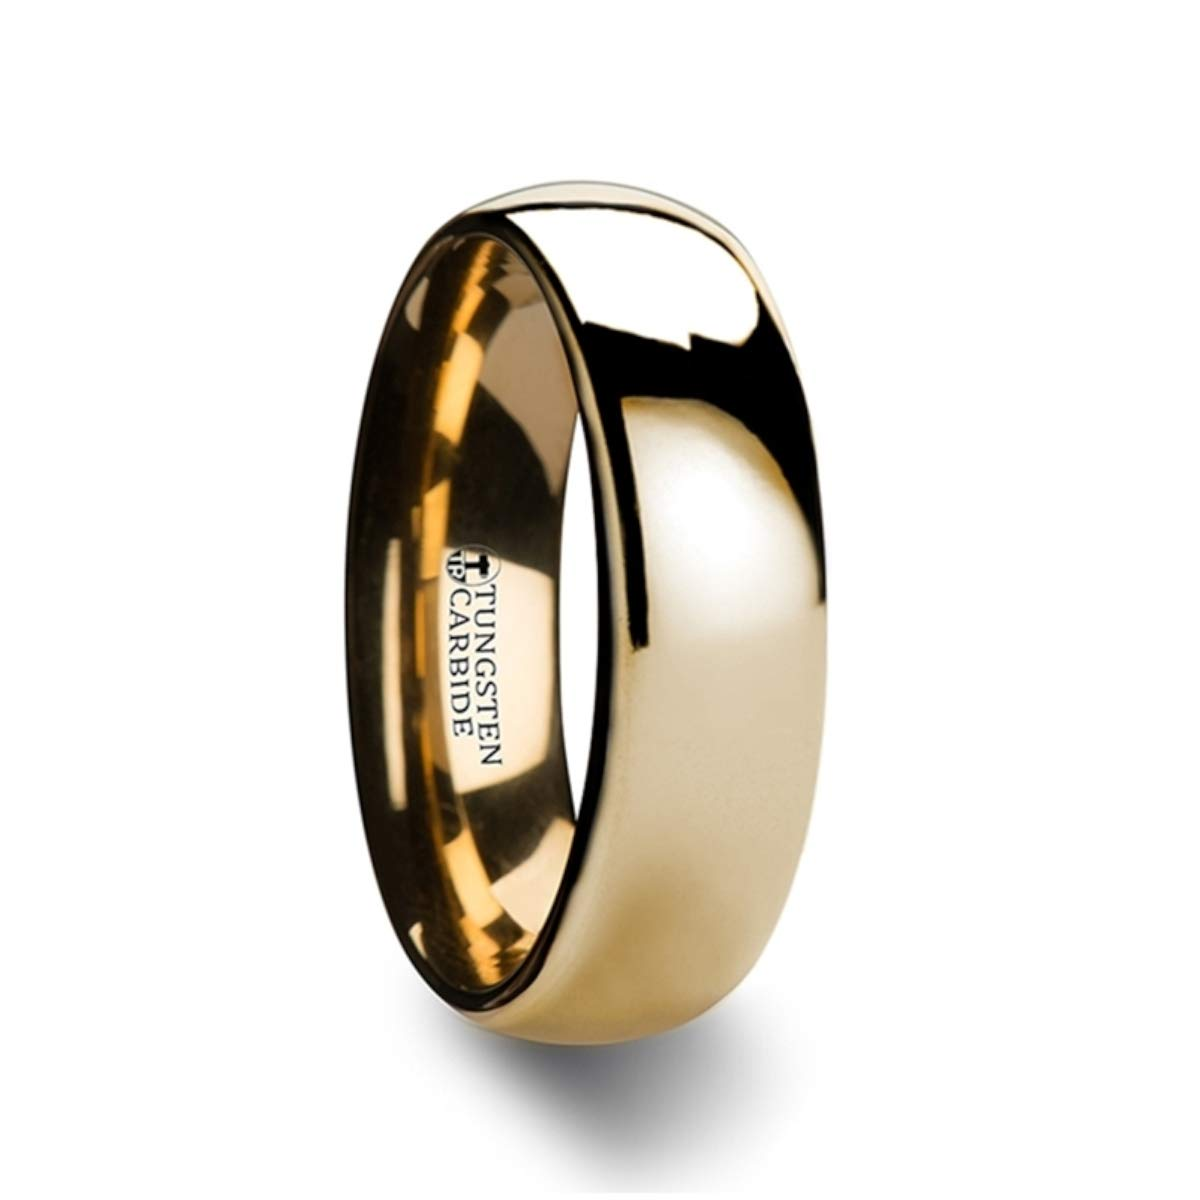 ORO Traditional Domed Gold Plated Tungsten Carbide Wedding Ring - 6mm & 8mm